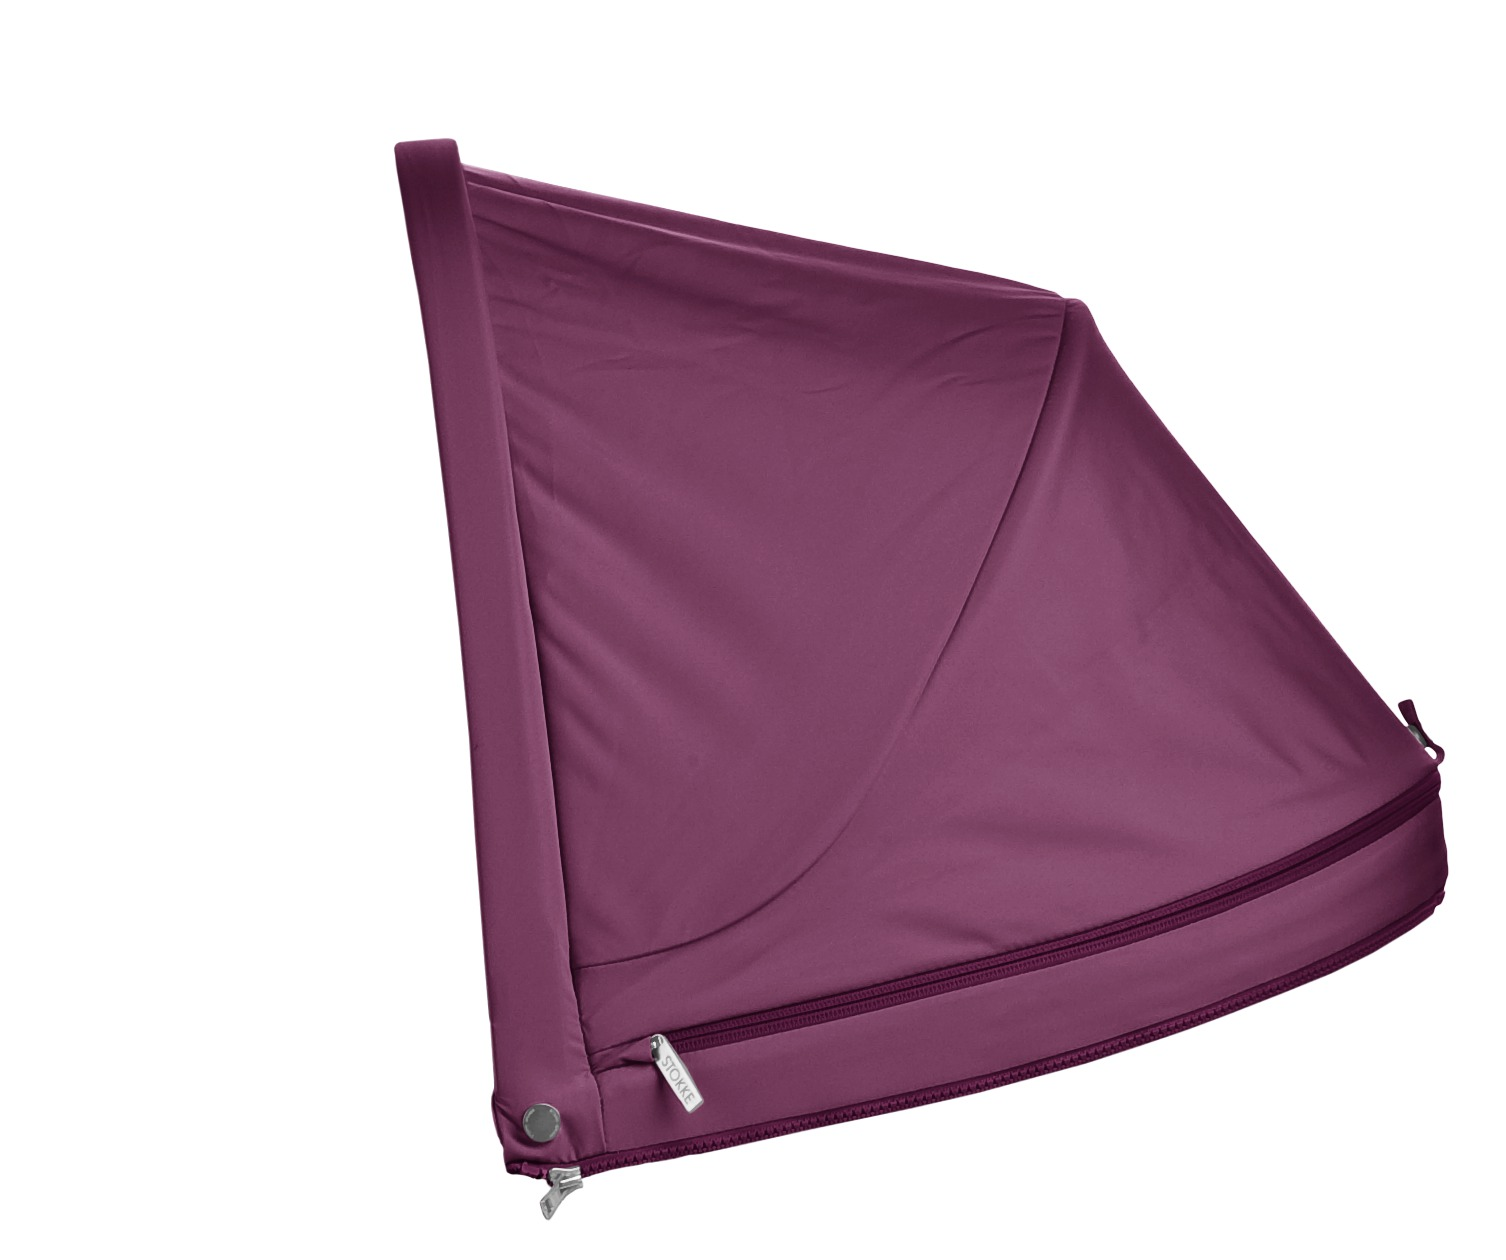 Stokke® Kinderwagen Verdeck Brombeer, Purple, mainview